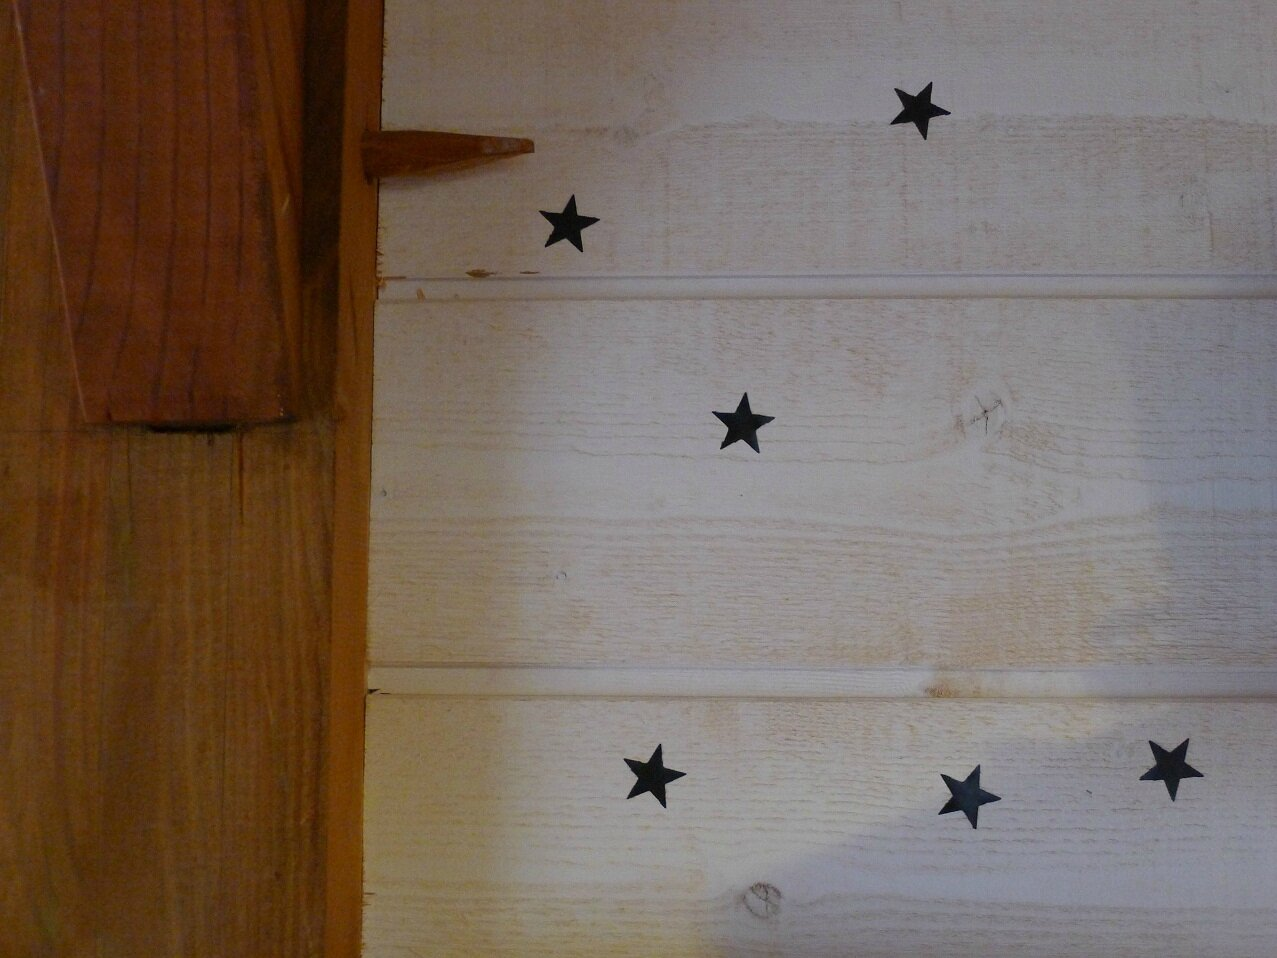 Etoiles Phosphorescentes Plafond Chambre Stickers Star Wars The Yokoblog Les Chinoiseries D 39une